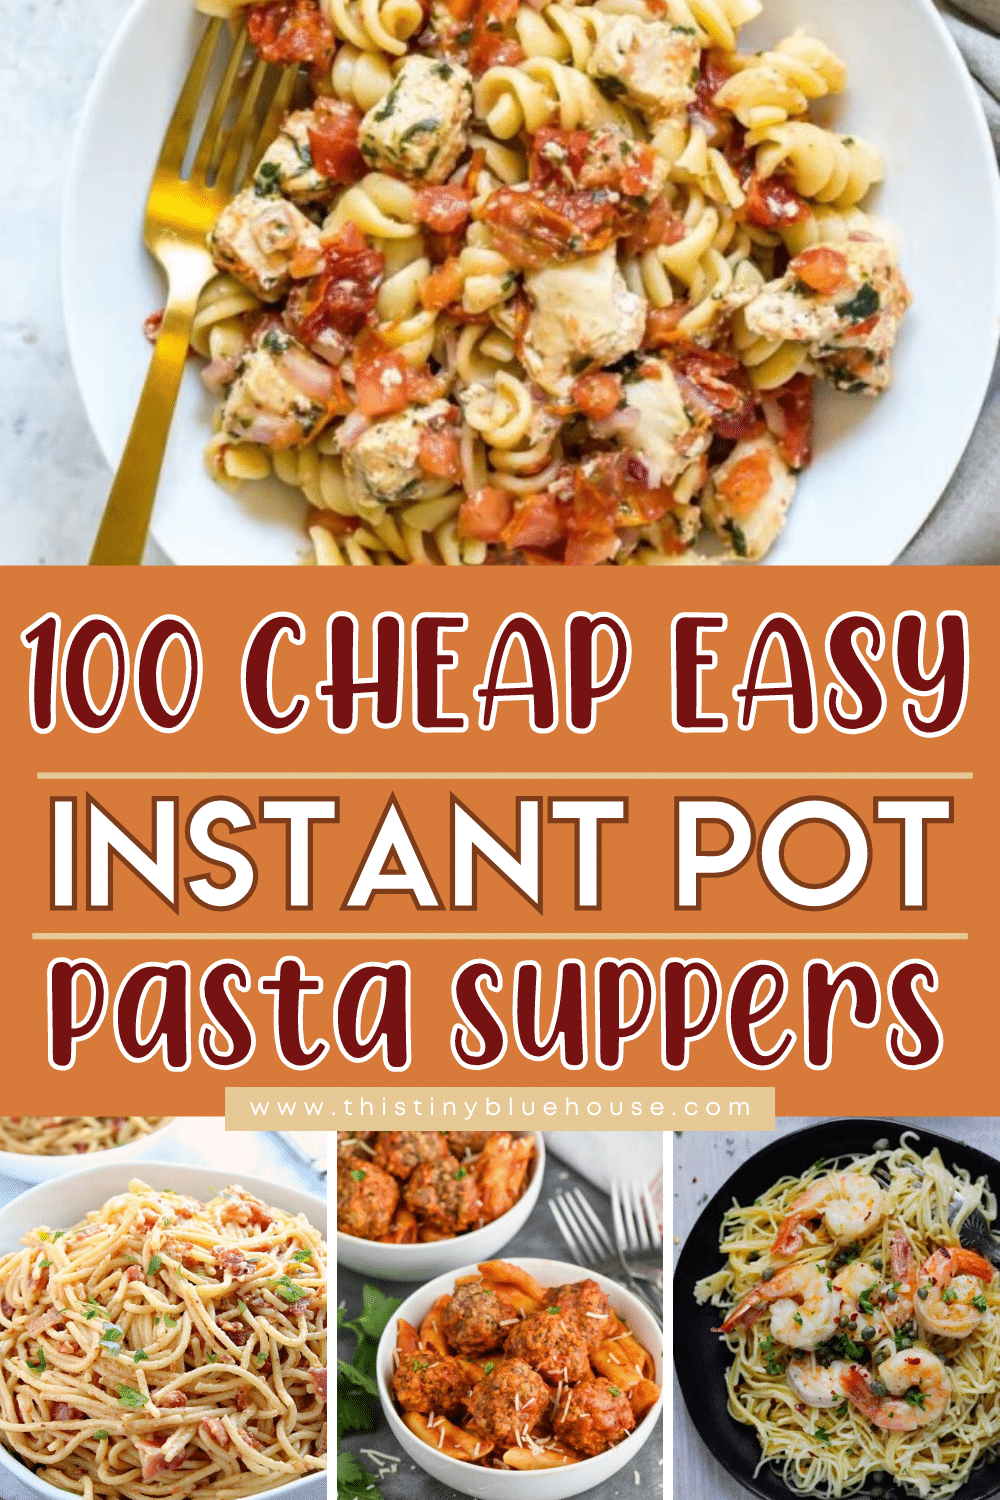 100 Cheap Easy Instant Pot Pasta Recipes